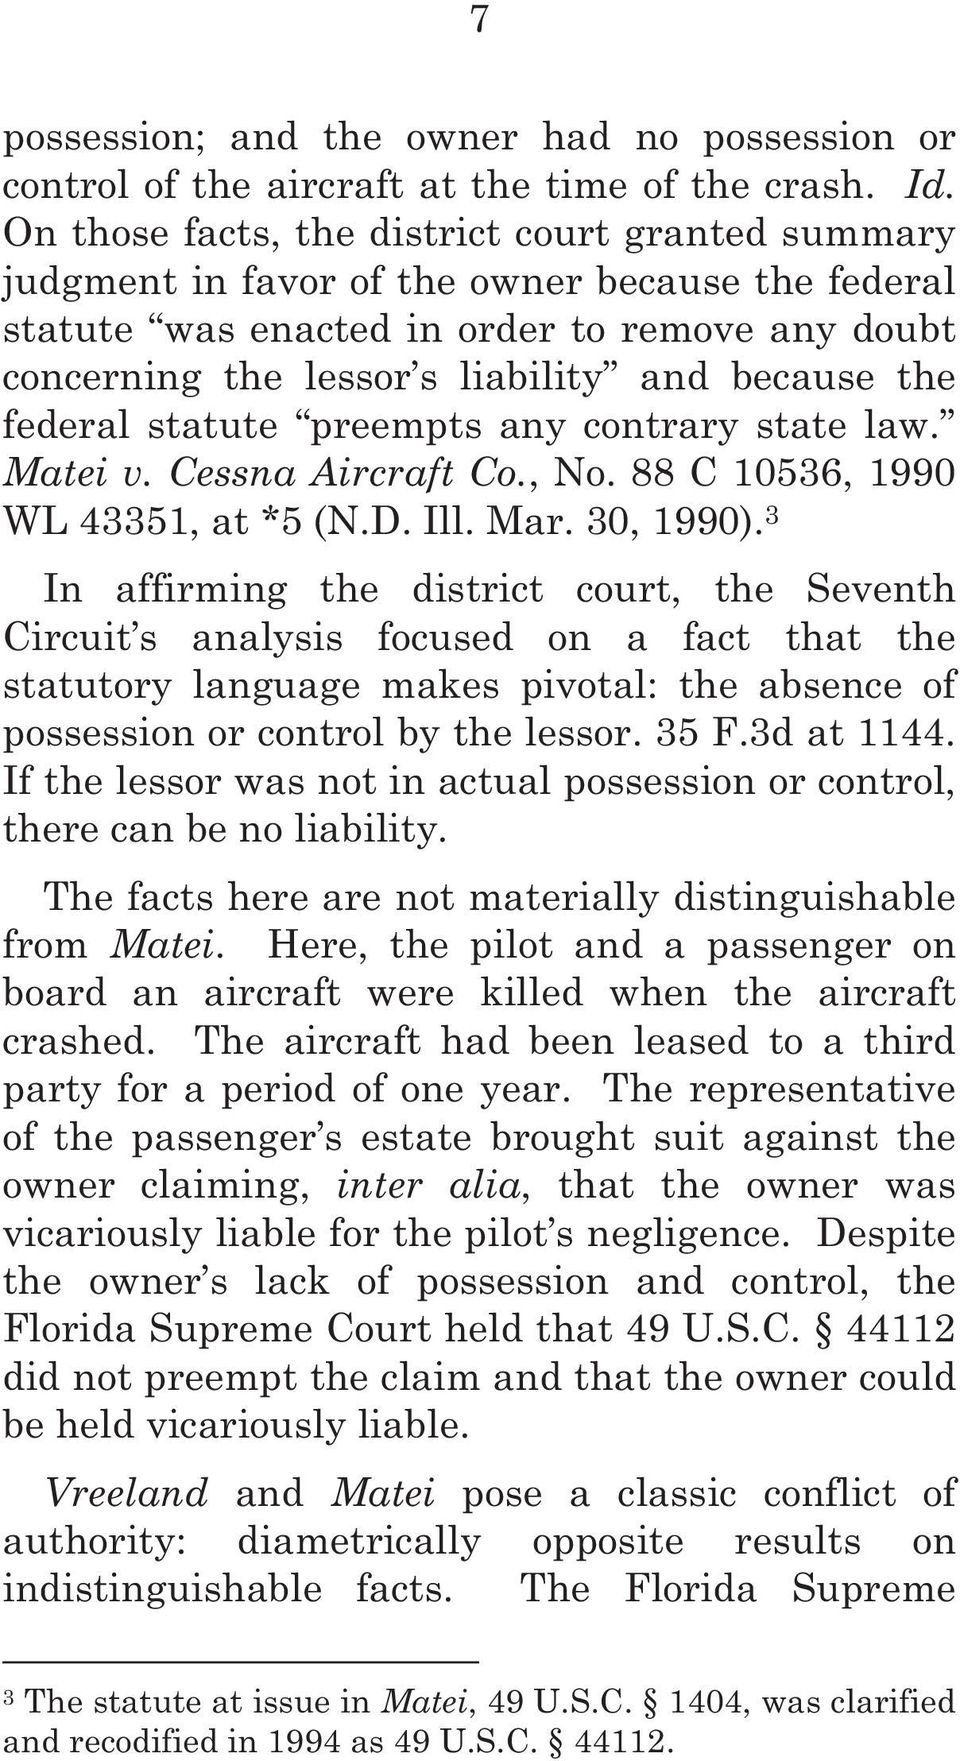 the federal statute preempts any contrary state law. Matei v. Cessna Aircraft Co., No. 88 C 10536, 1990 WL 43351, at *5 (N.D. Ill. Mar. 30, 1990).